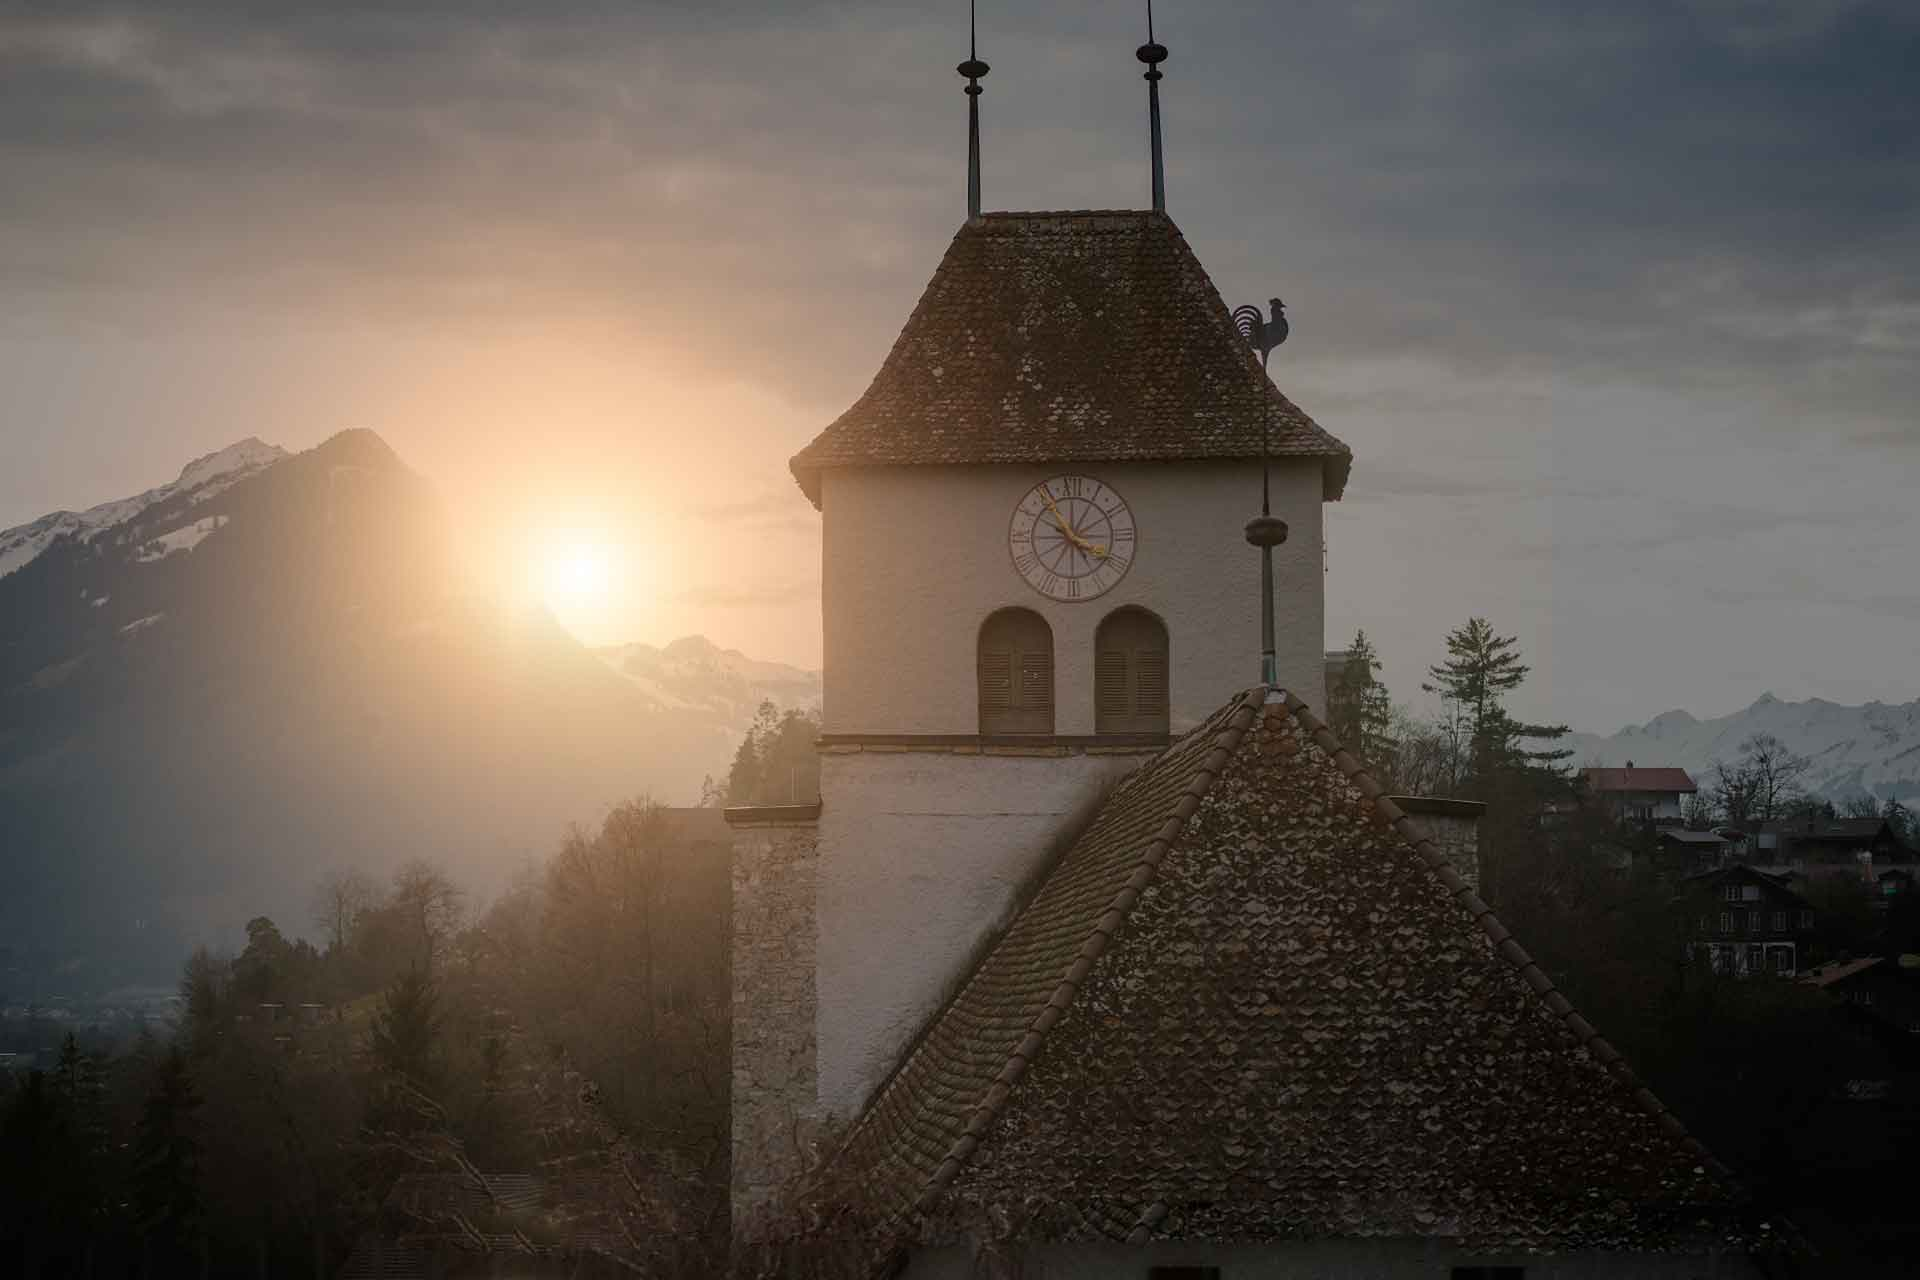 Ringgenberg Church at sunset